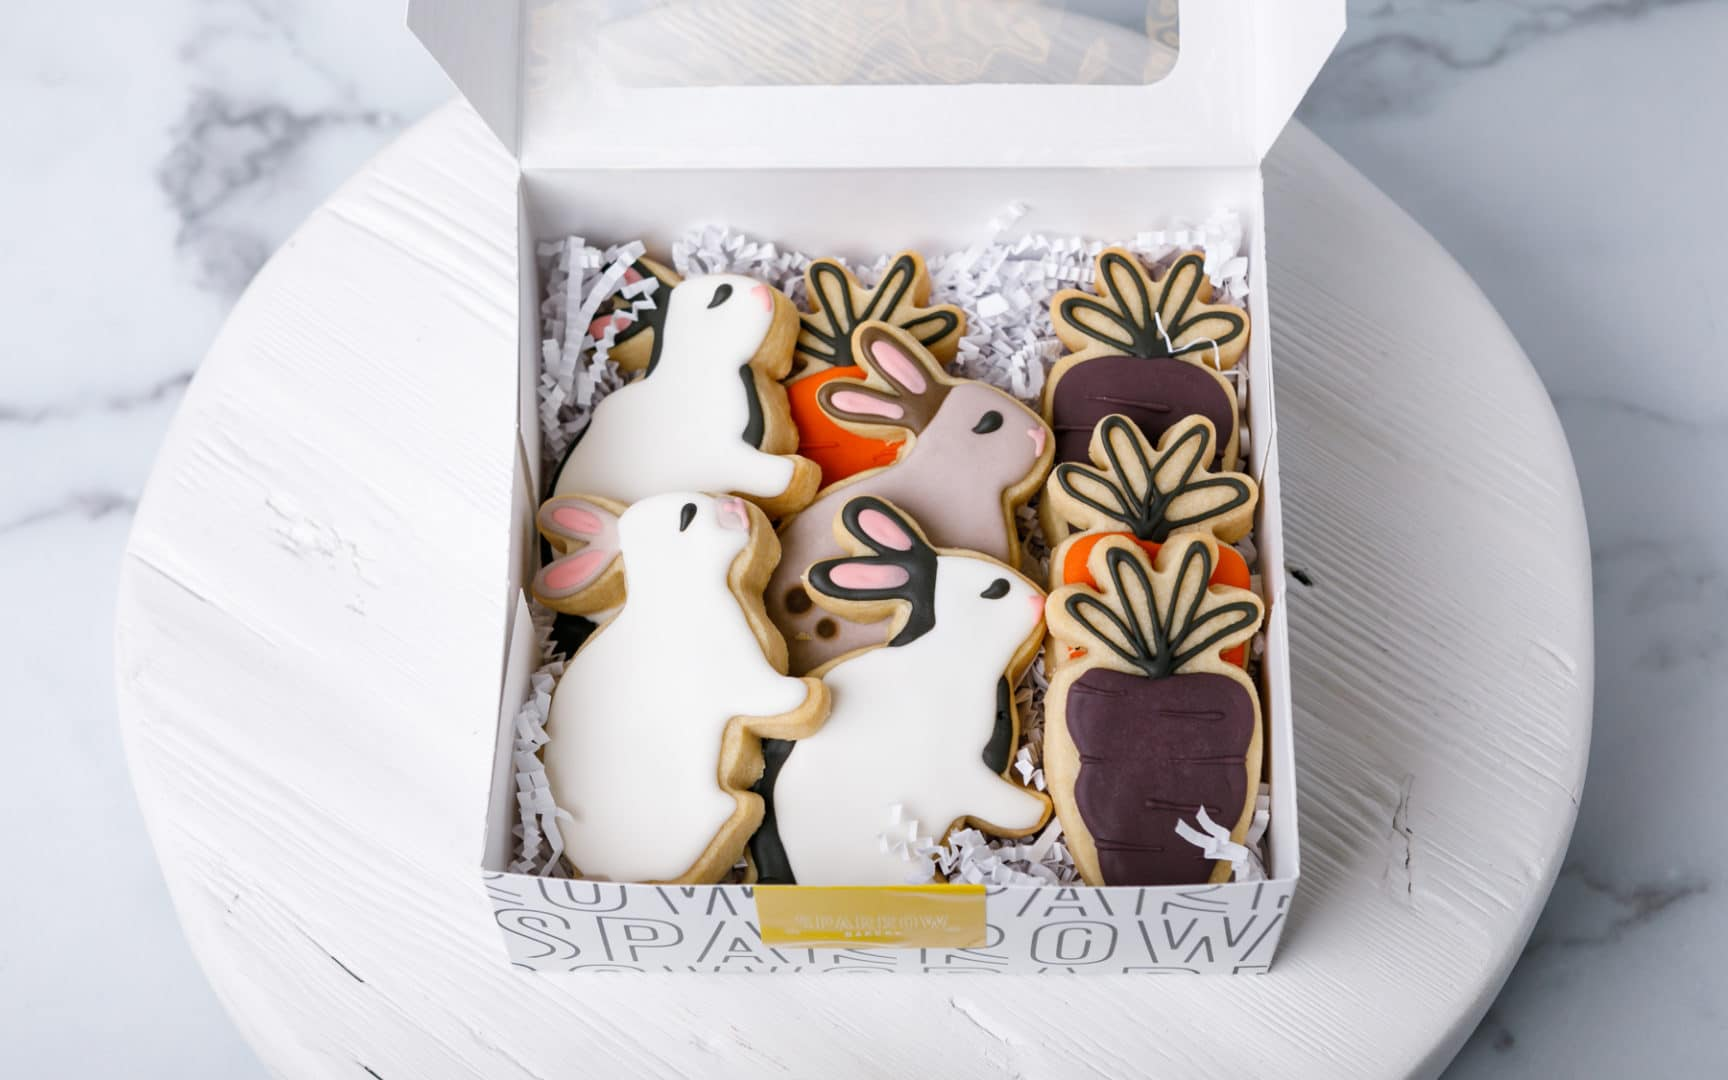 box of bunny and carrot shaped cookies for Easter from Zupan's Markets bakery